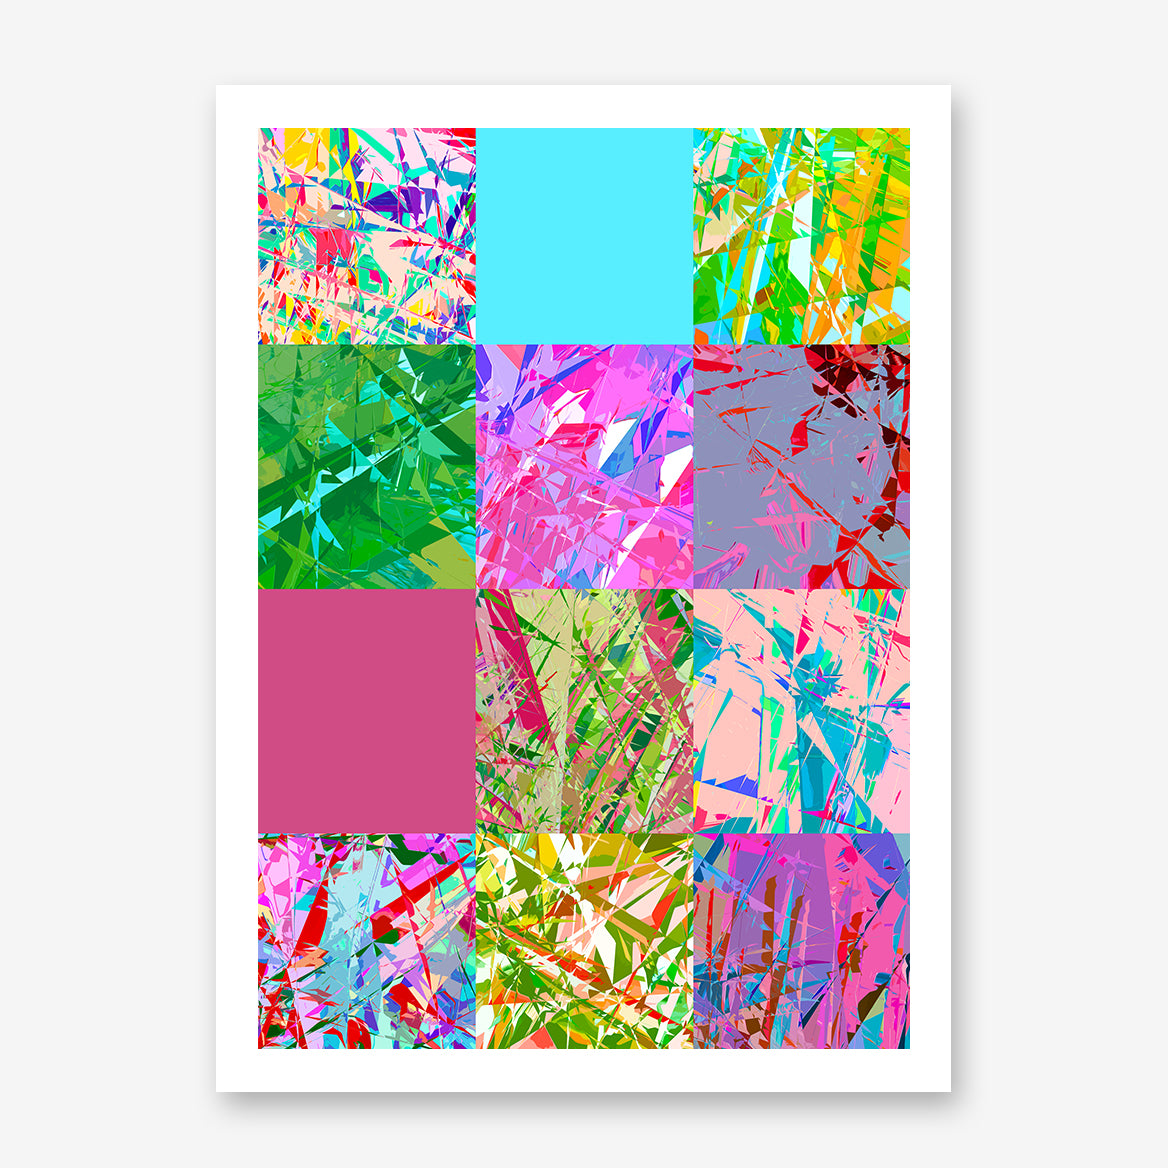 Poster print with colourful abstract digital art collection.